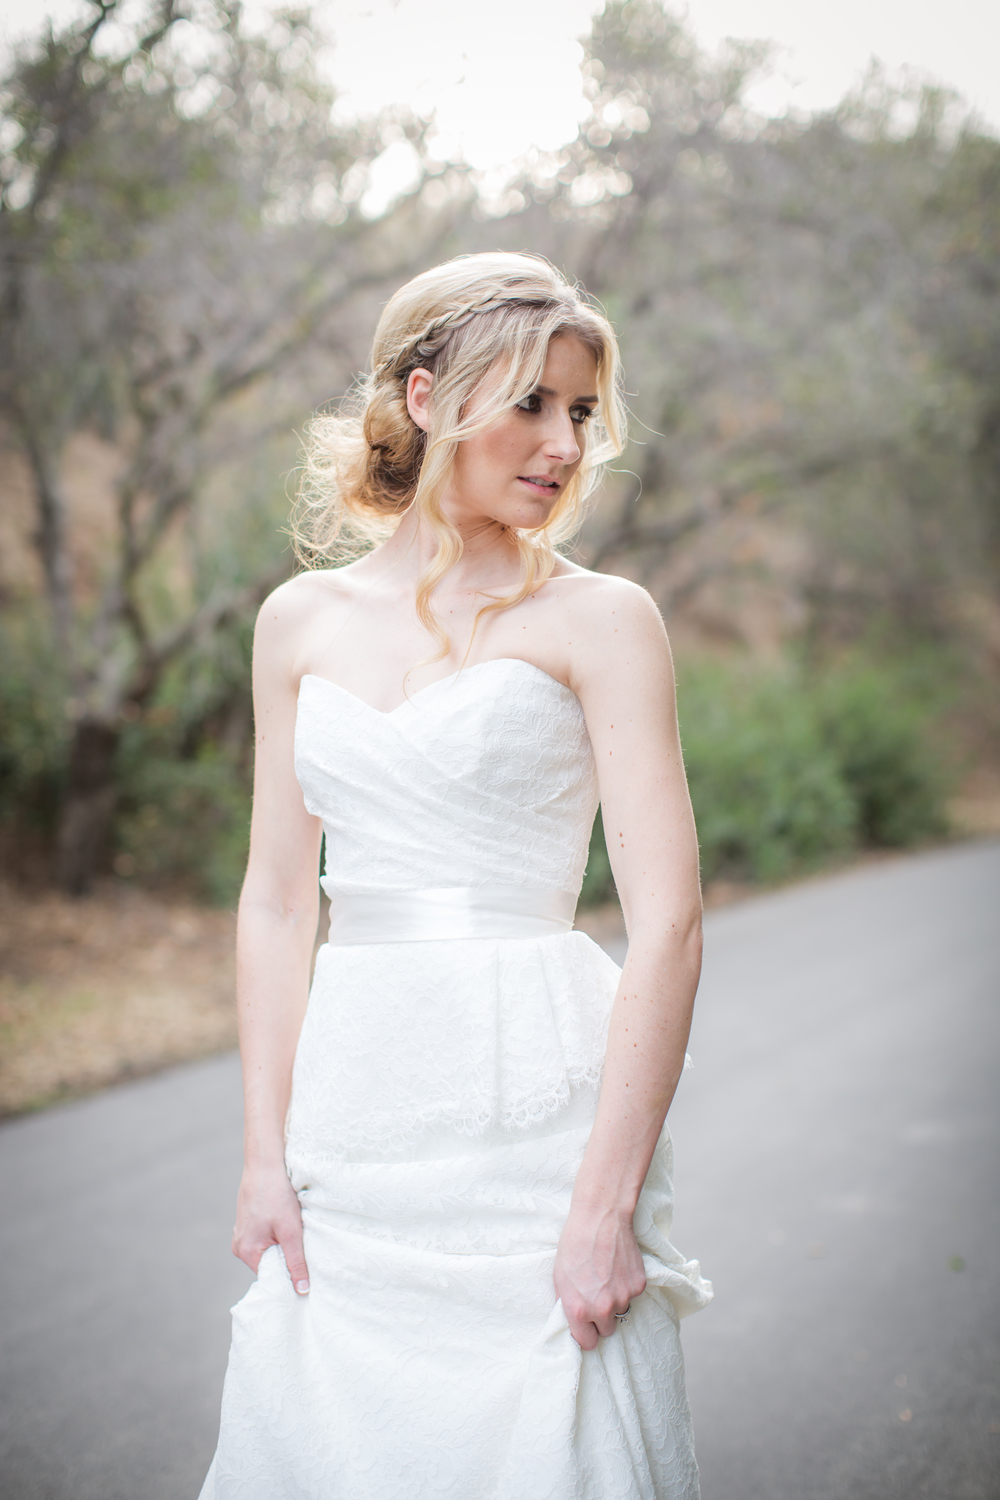 Theresa Bridget Photography // Dress: Love & Lace Bridal Salon